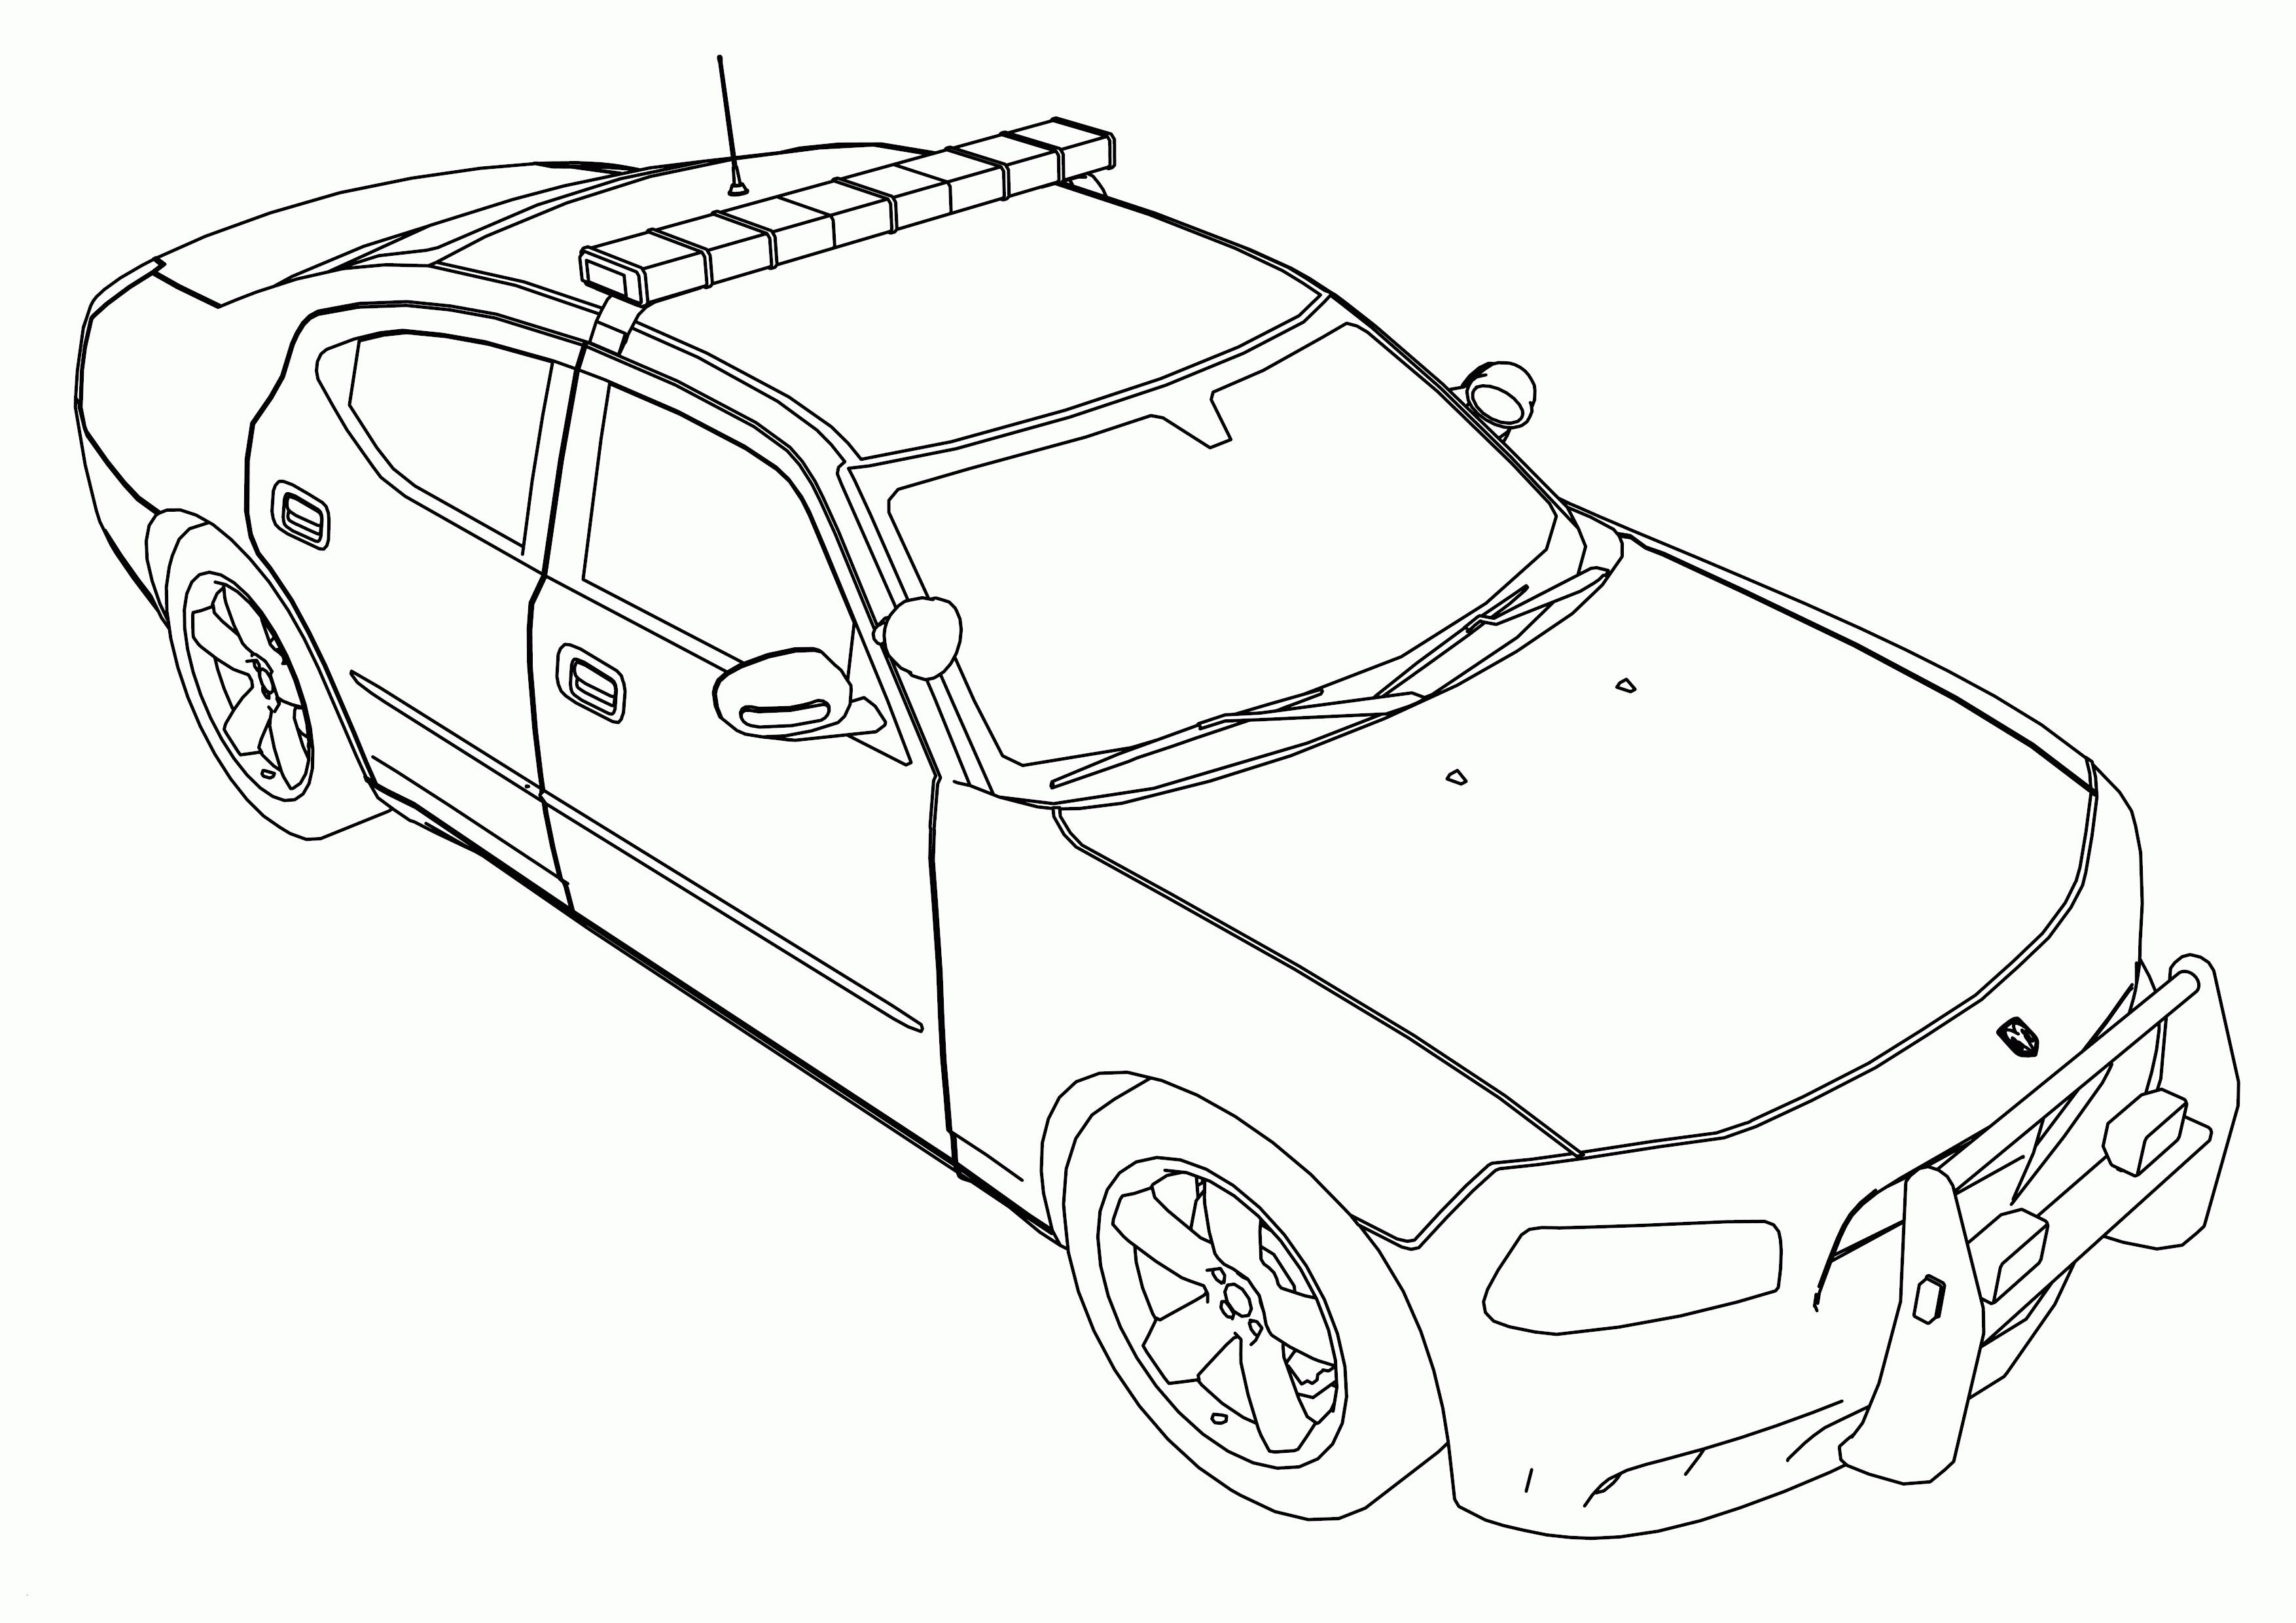 City Police Car Printable Coloring Page Cars Coloring Pages Paw